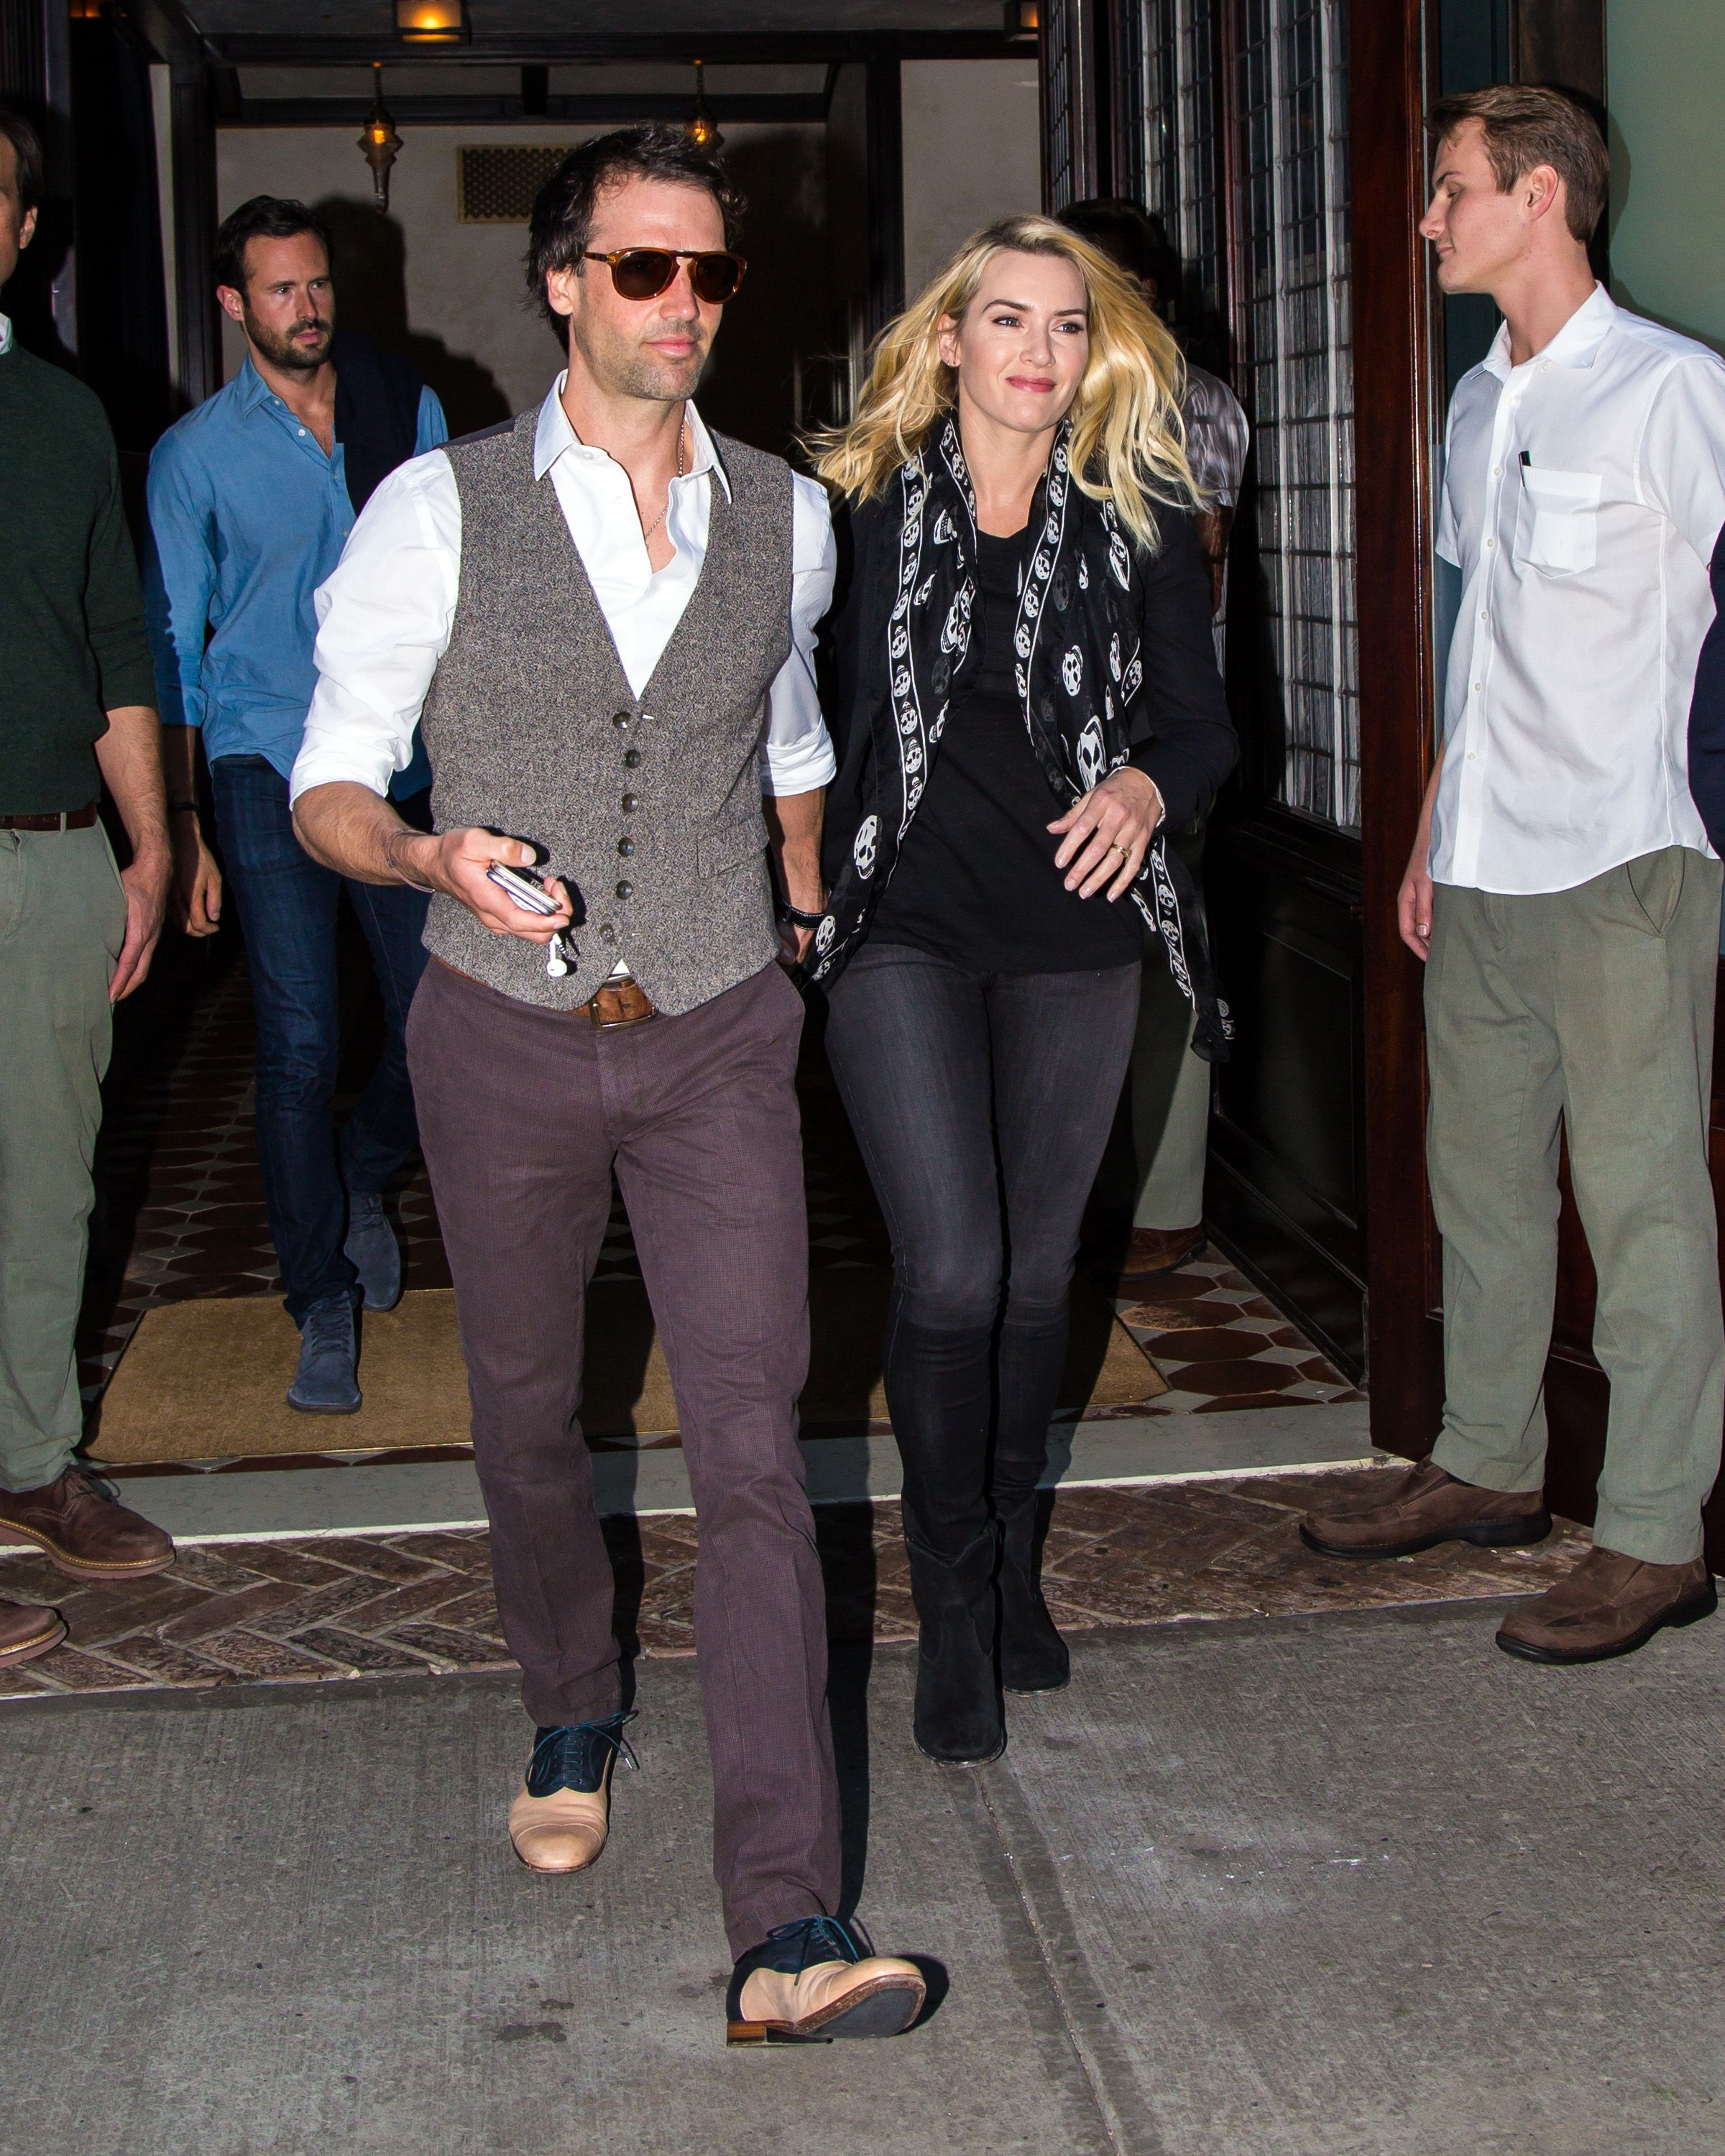 Ned Rocknroll and Kate Winslet leaving a hotel in 2015 in New York City   Source: Getty Images